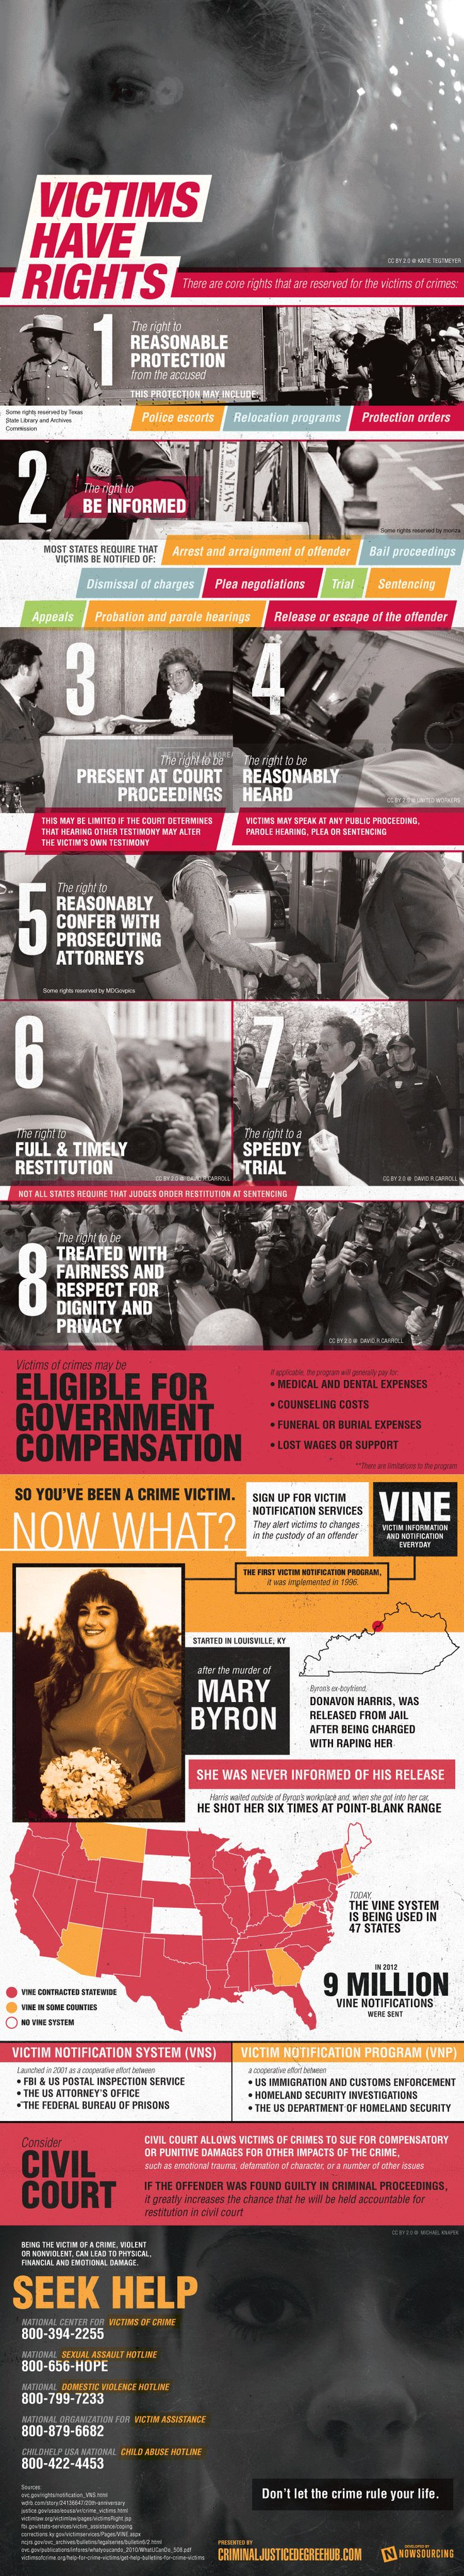 Victims Have Rights tTo   #infographic #Victims #Rights